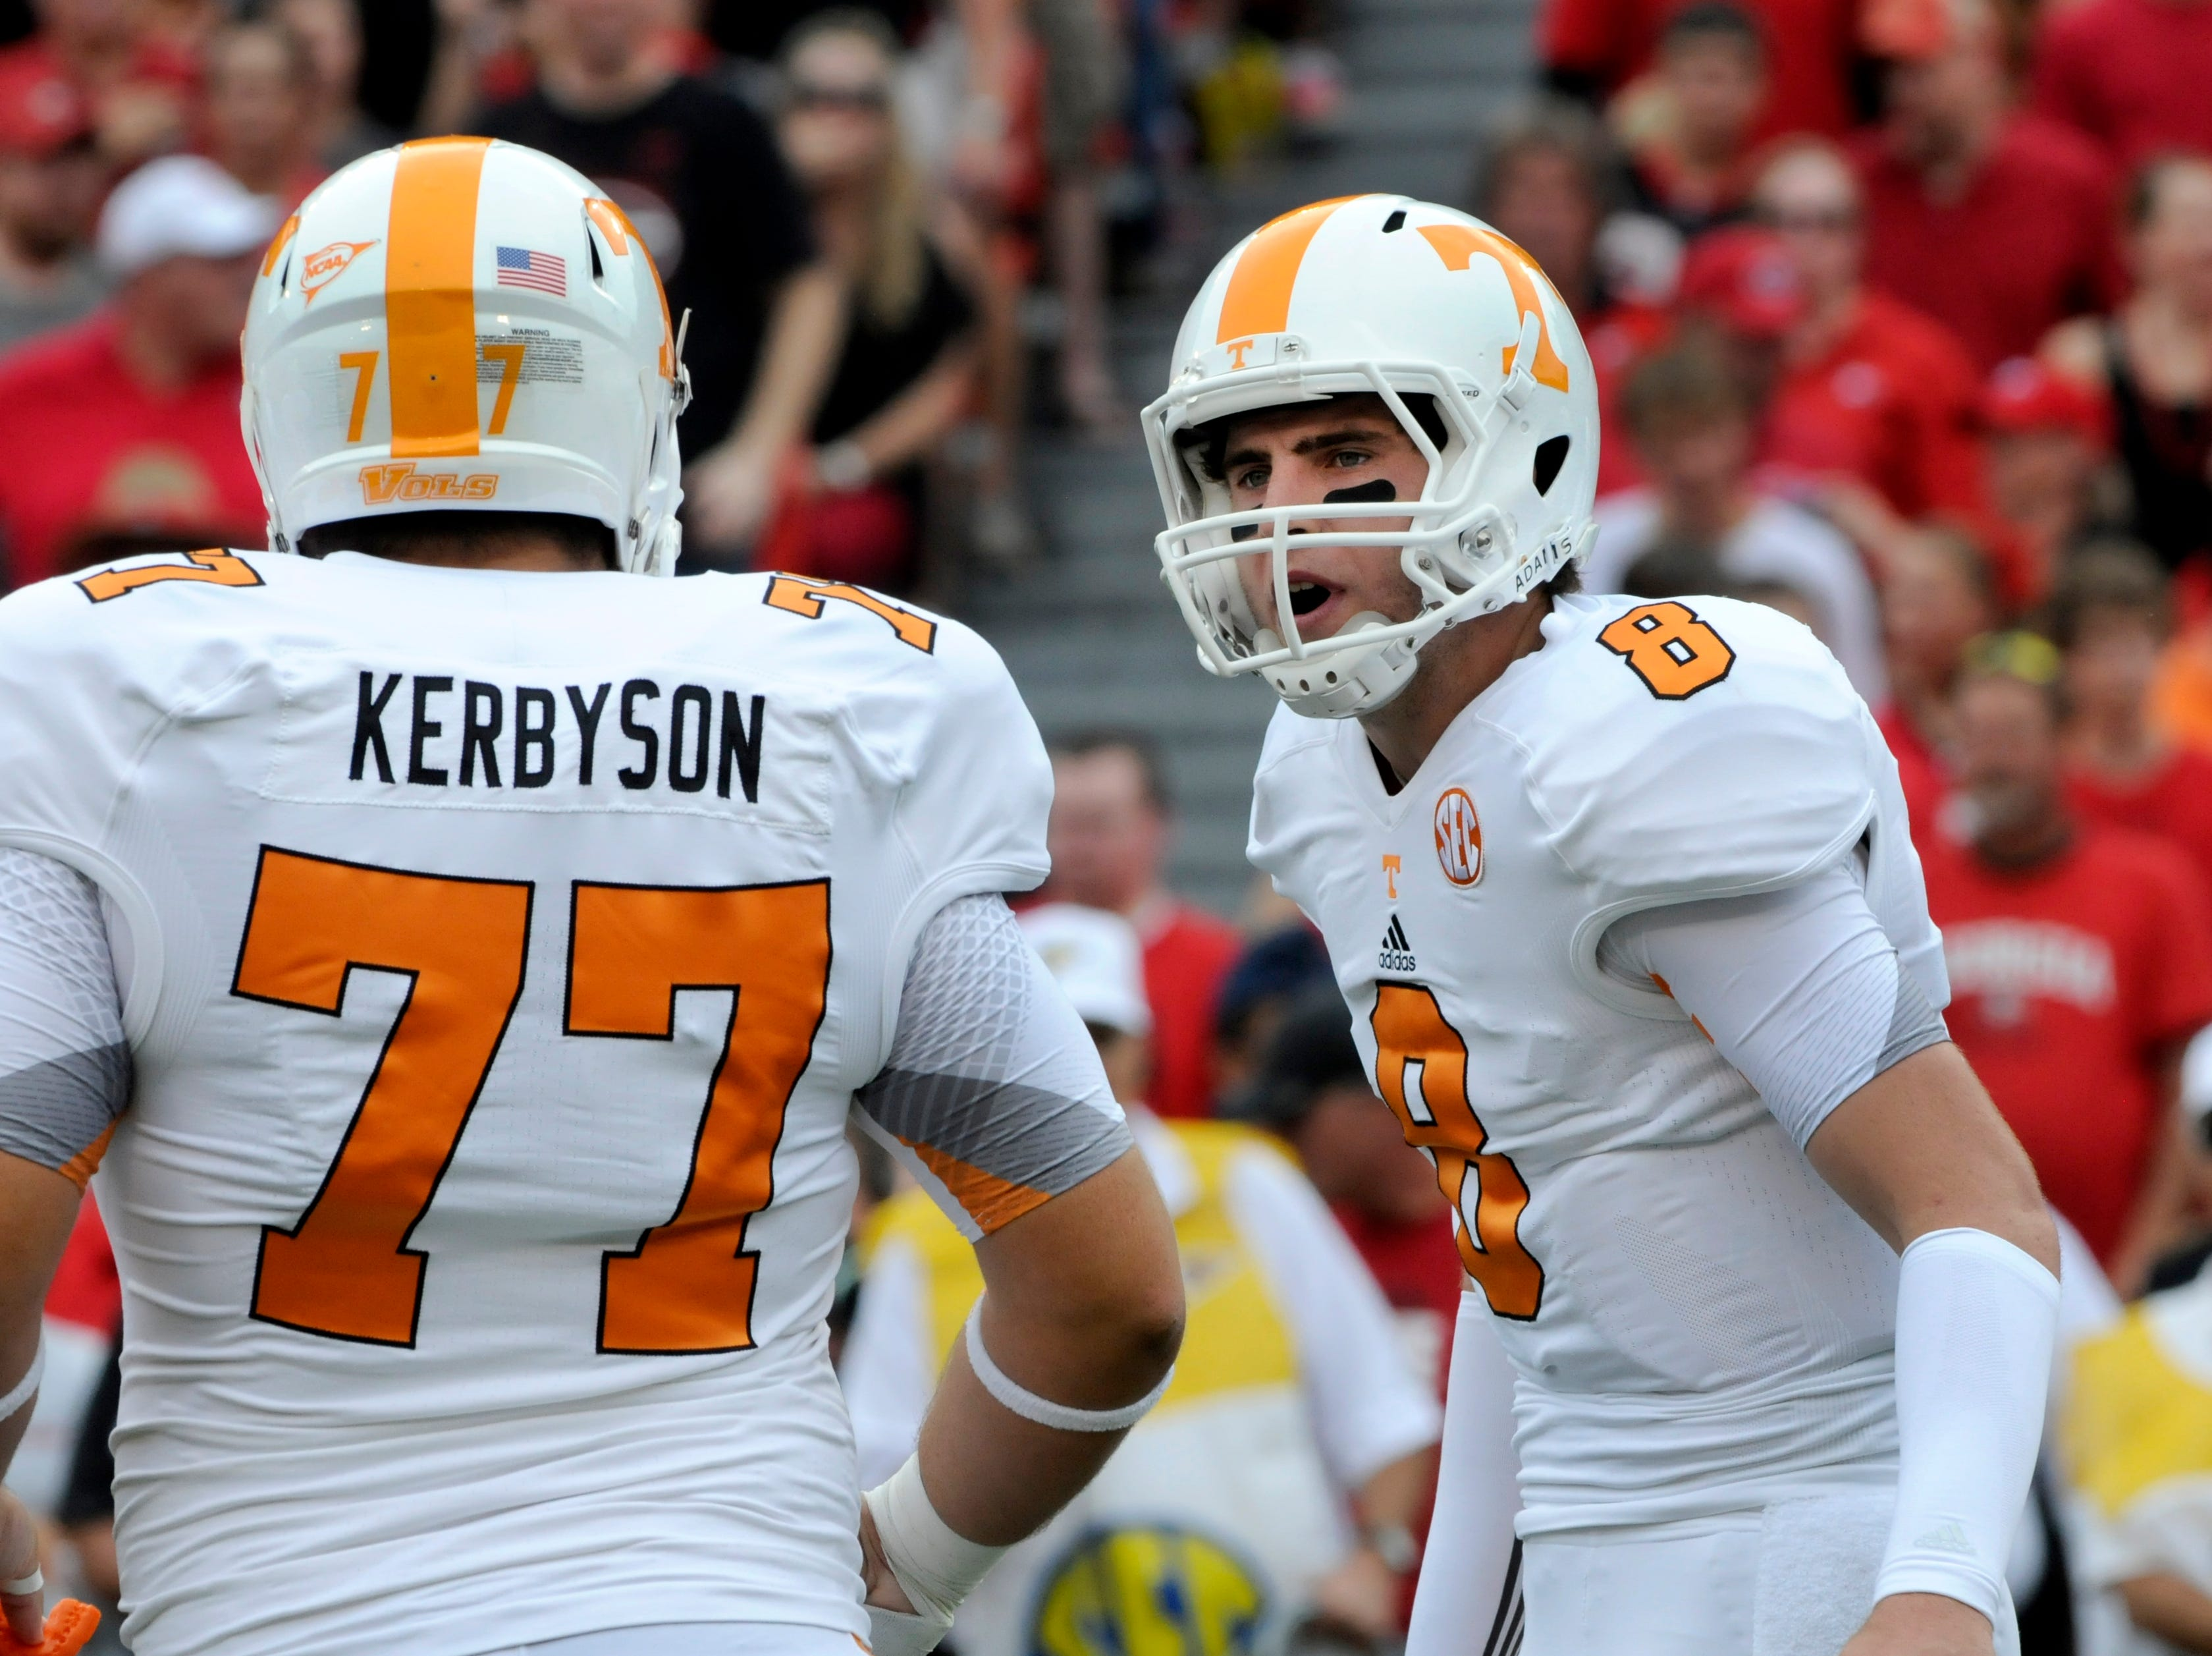 Tennessee Volunteers quarterback Tyler Bray (8) gives an audible play change to offensive linesman Kyler Kerbyson (77) during their 51-44 loss to Georgia Saturday, Sep. 29, 2012 in Sanford Stadium in Athens, Ga.